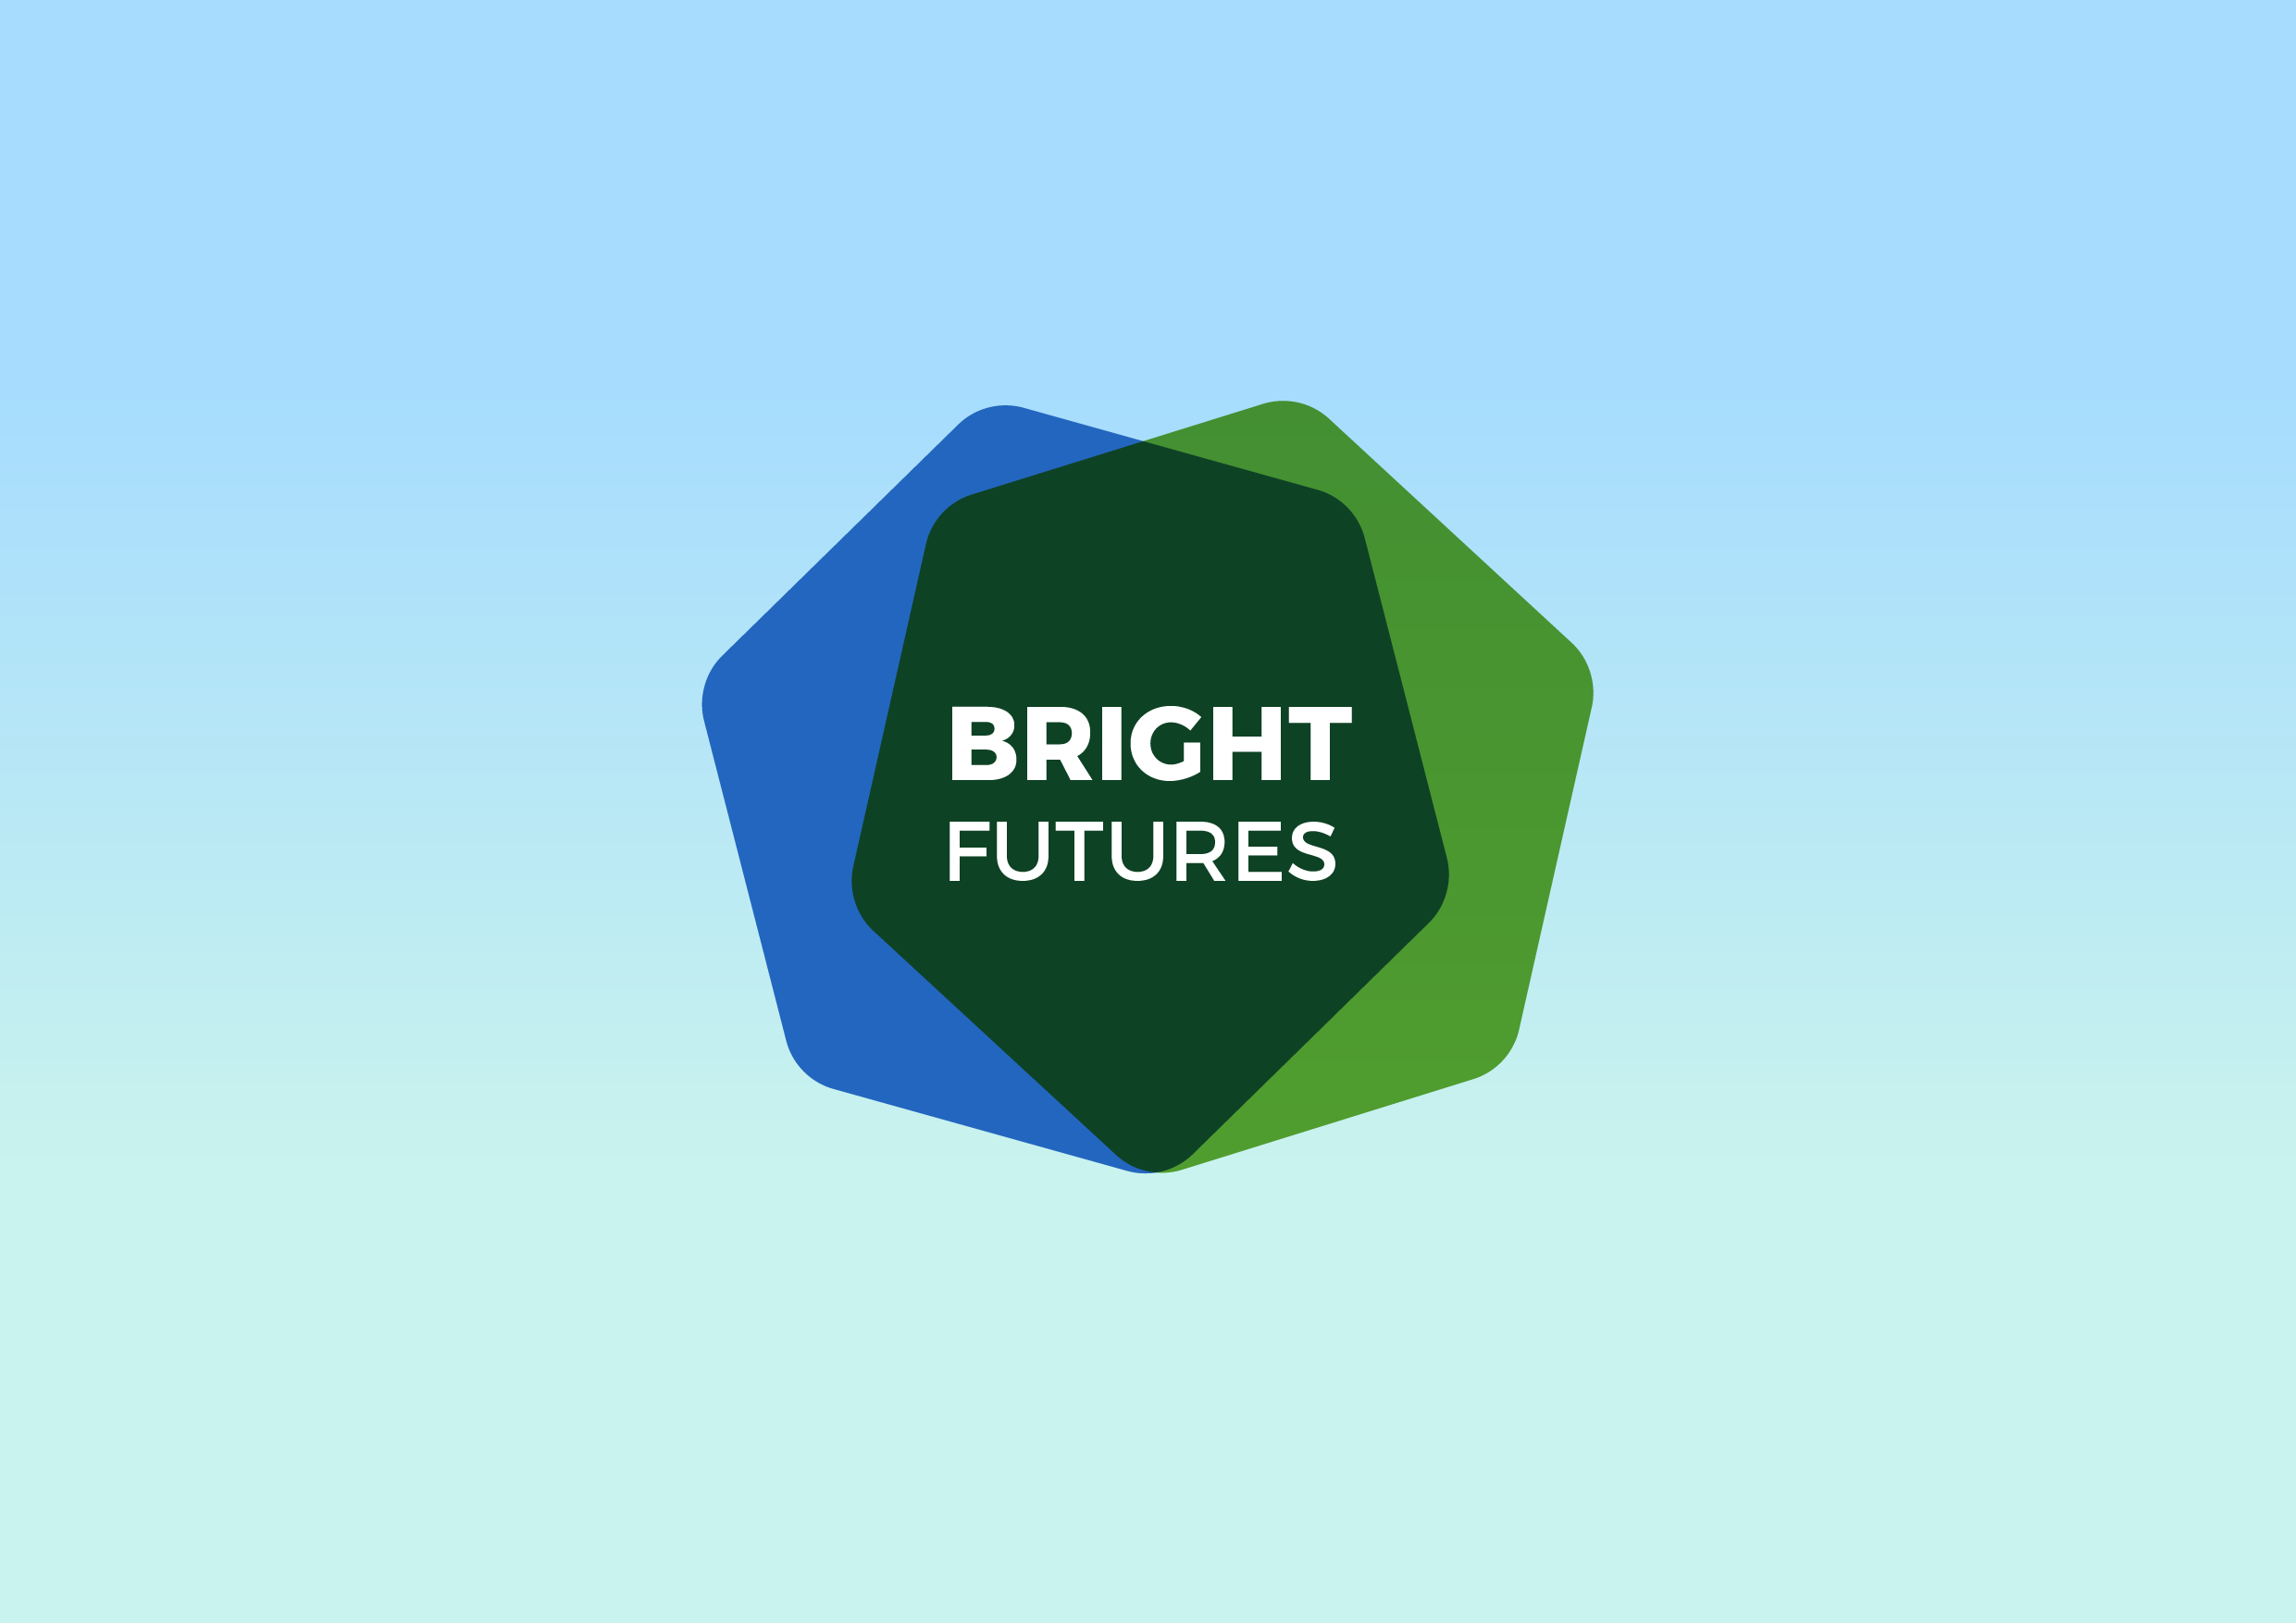 The shaw trust - Bright futures